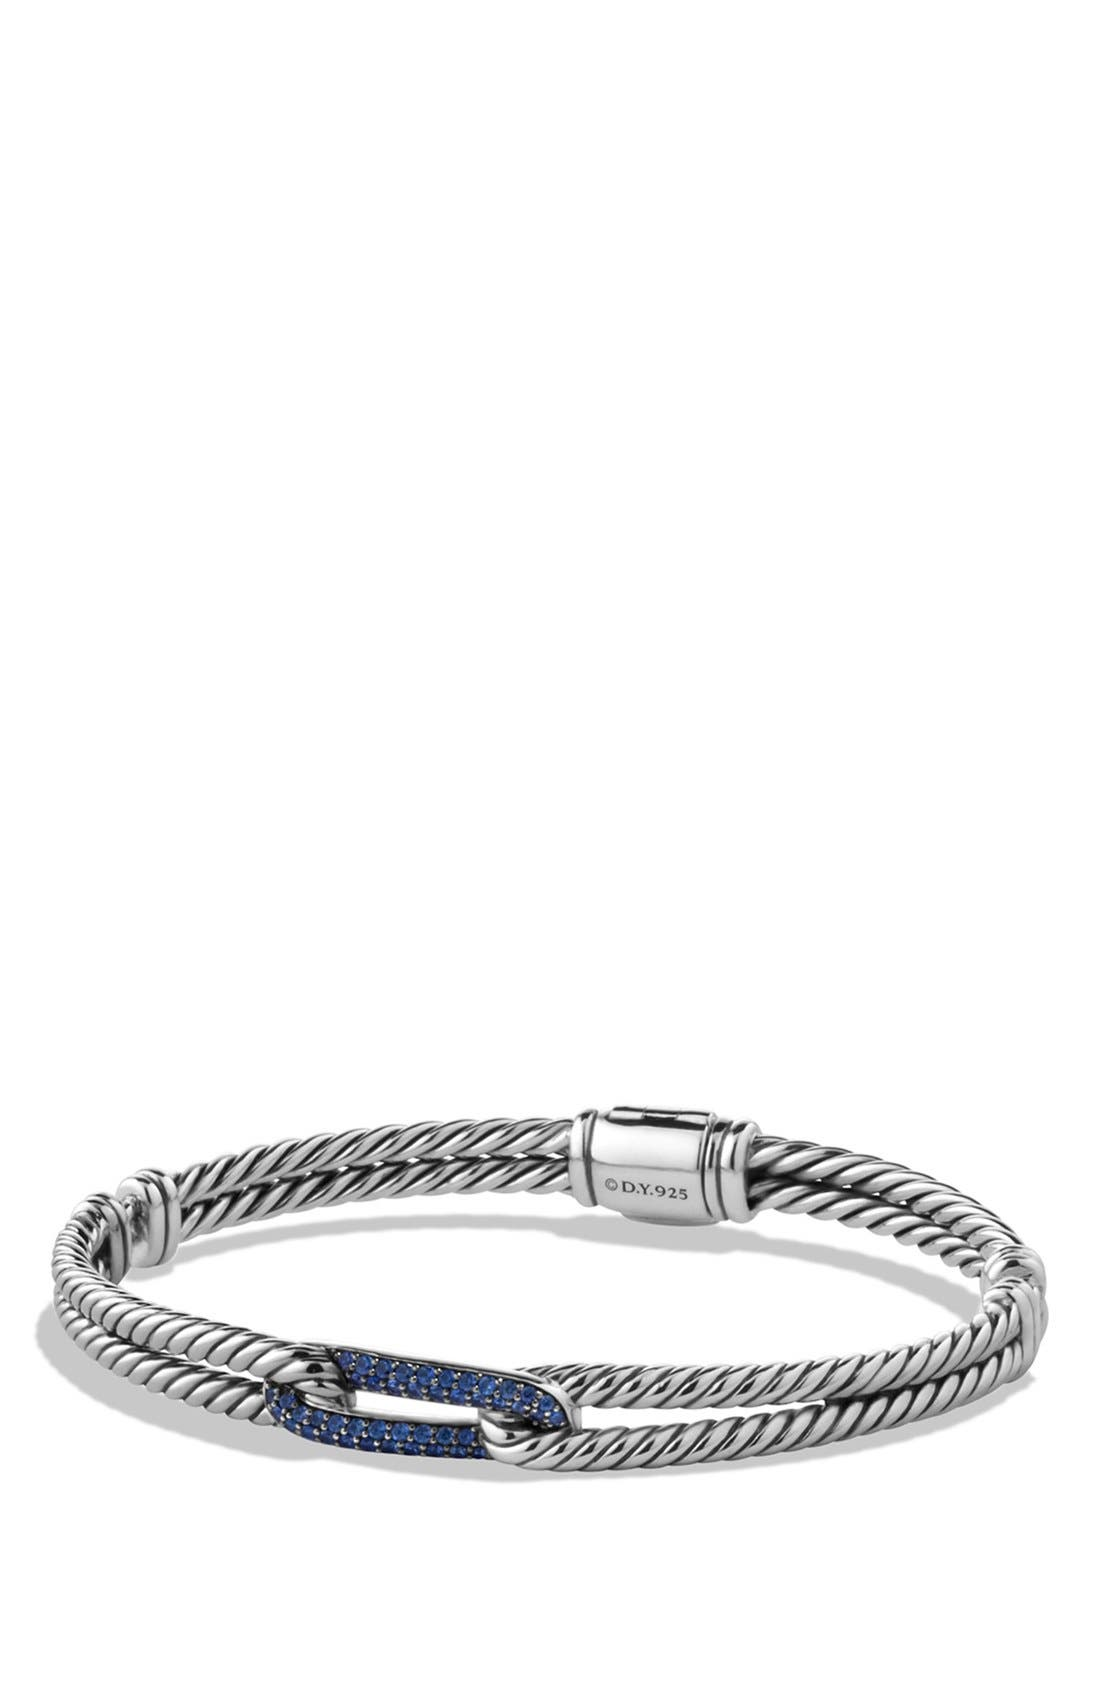 Luxurious David Yurman Labyrinth Petite Pav 233 Single